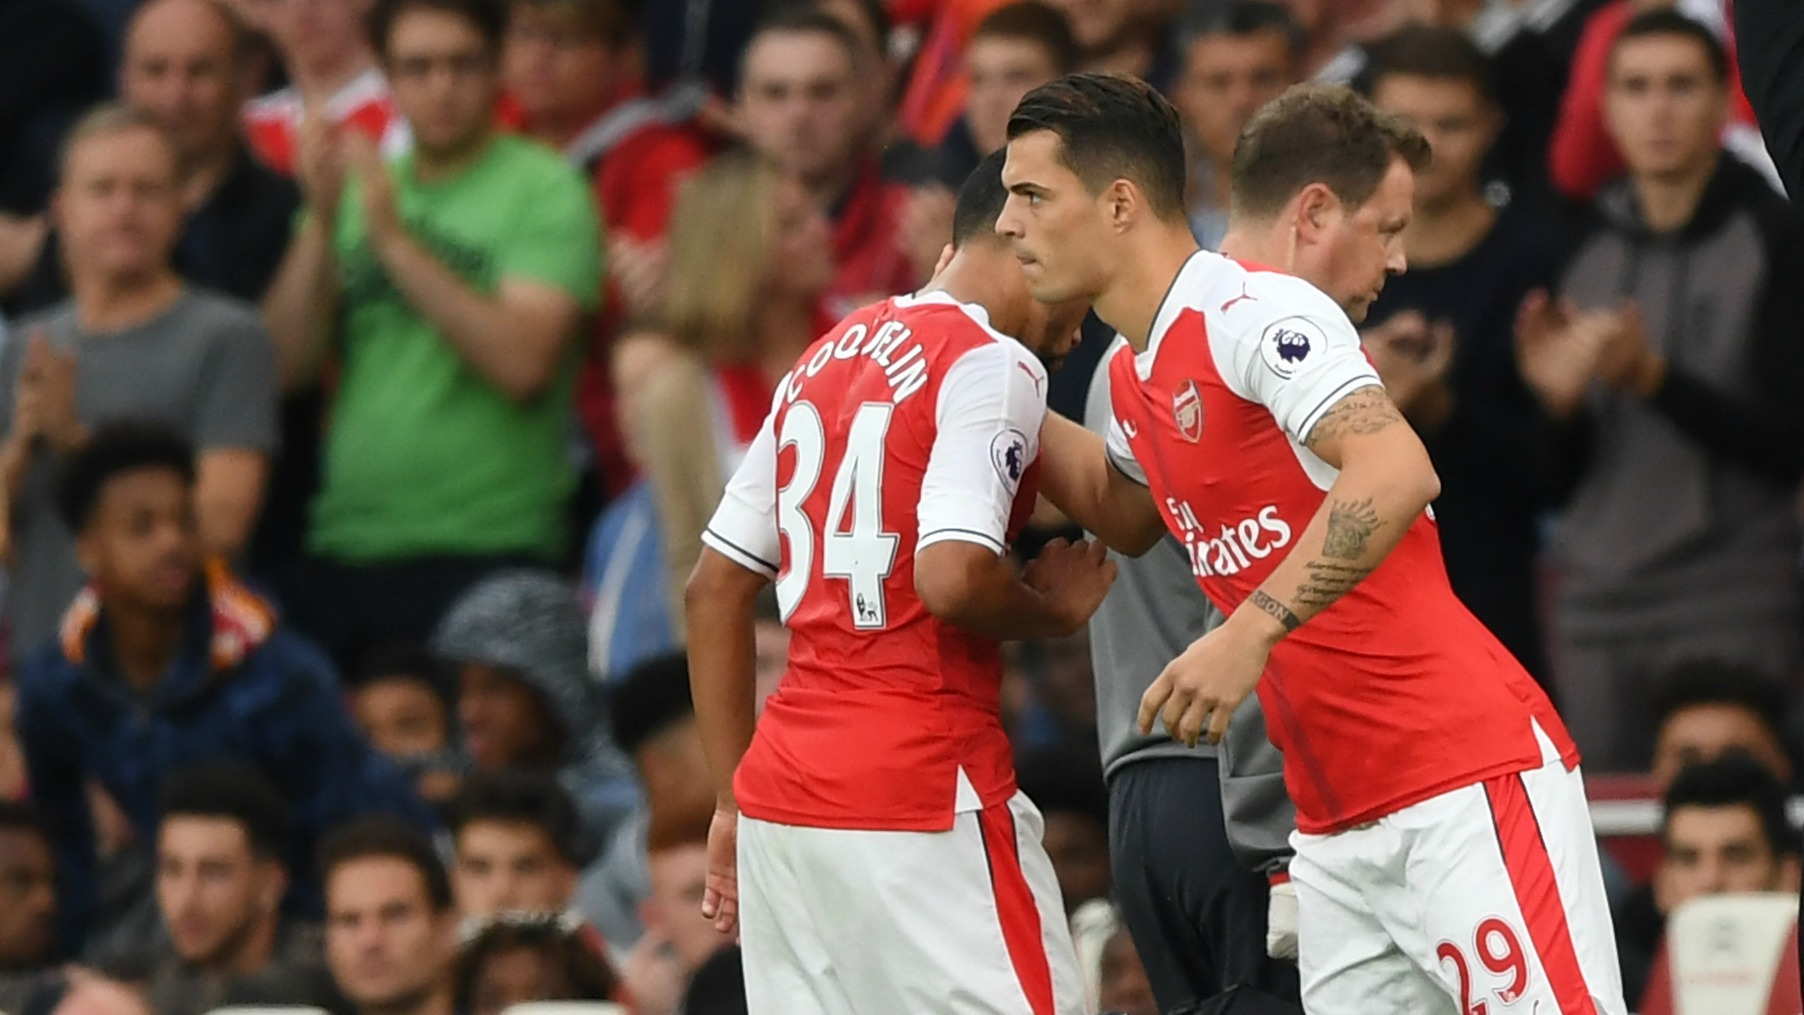 Francis Coquelin's injury gives Granit Xhaka and Arsenal the chance to take a leap forward